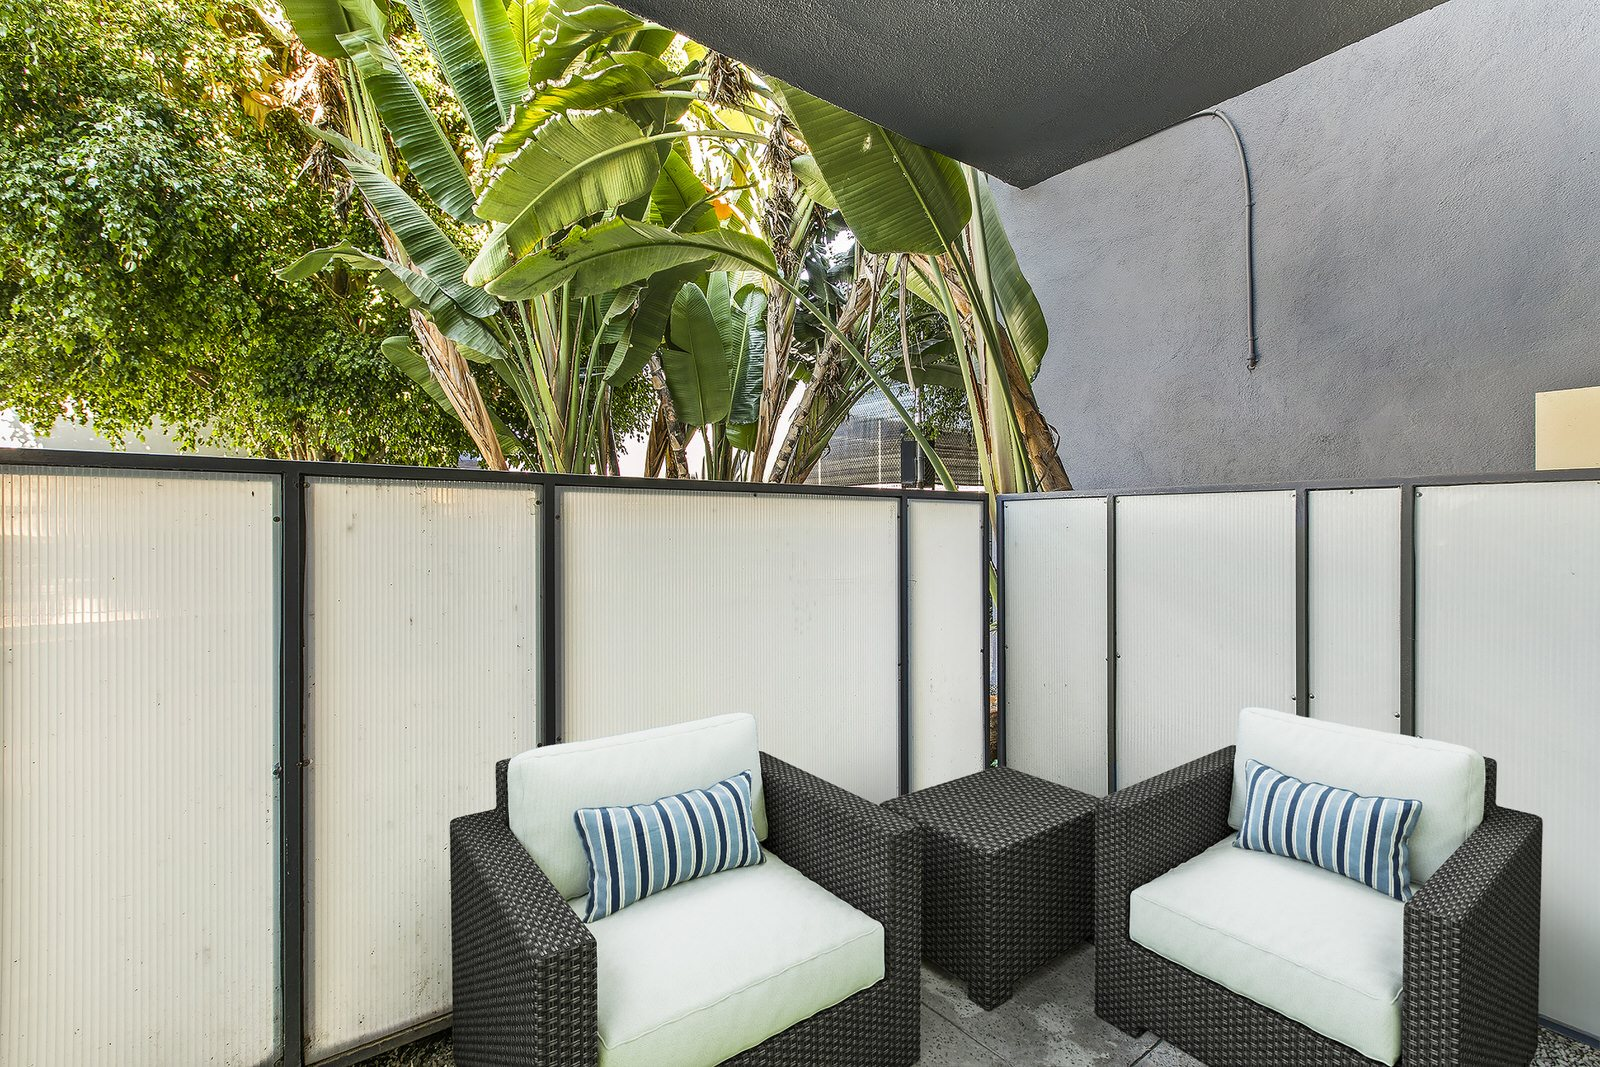 Private Patio Photo Studio For Rent at Milano Apartments 20900 Anza Ave Torrance, CA 90503